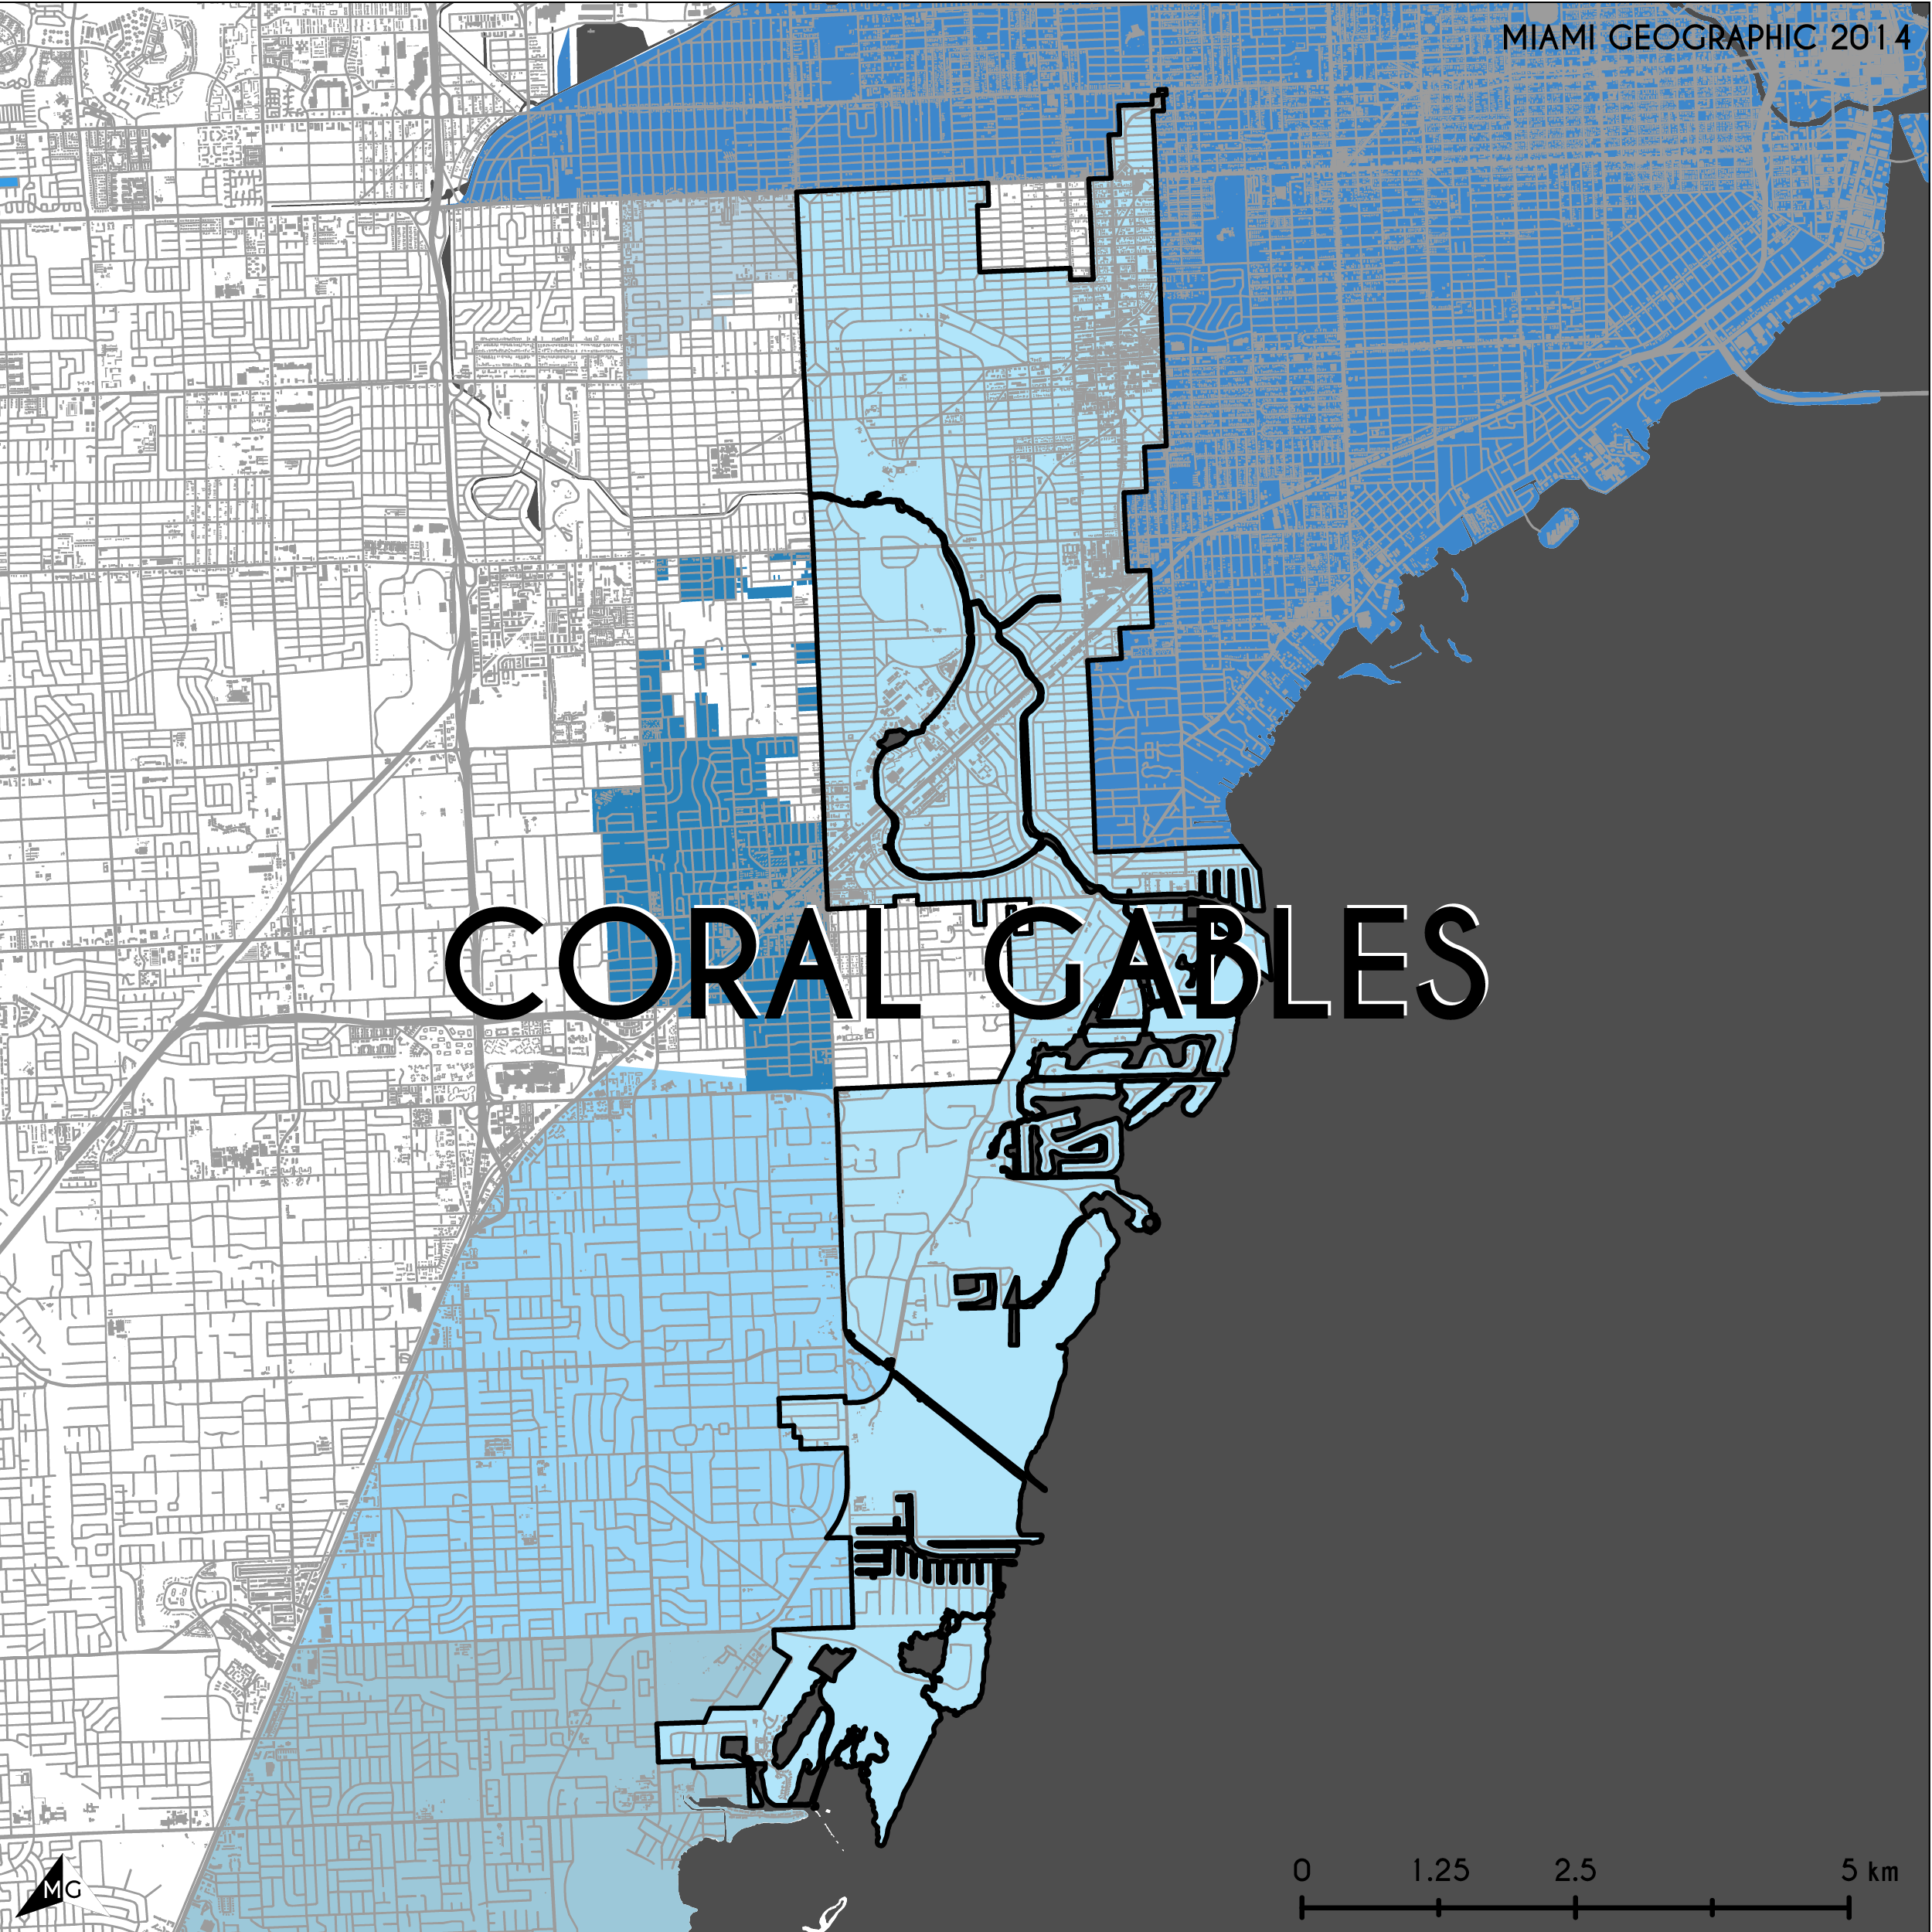 Maps Municipalities Of MiamiDade County Miami Geographic - Florida map dade city